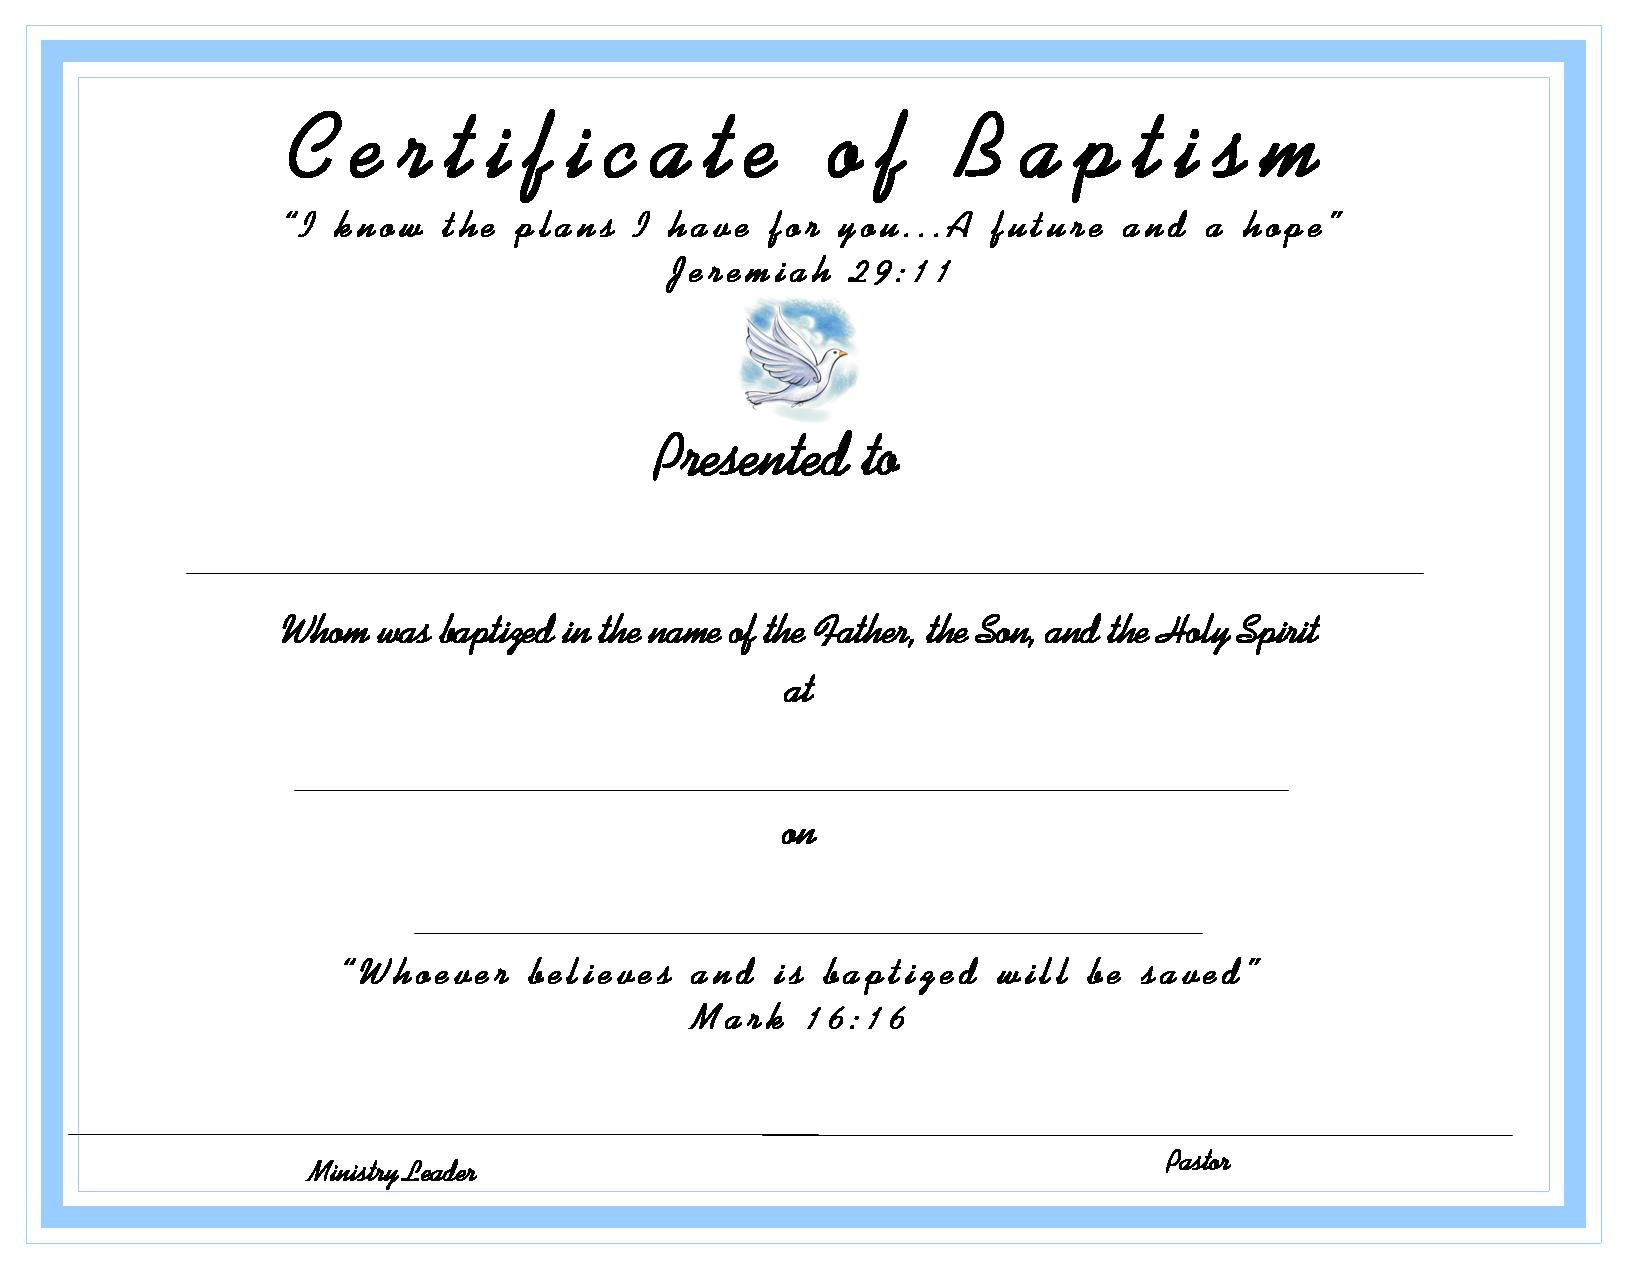 Certificatetemplate Baptism Certificate For Your Kids Ministry